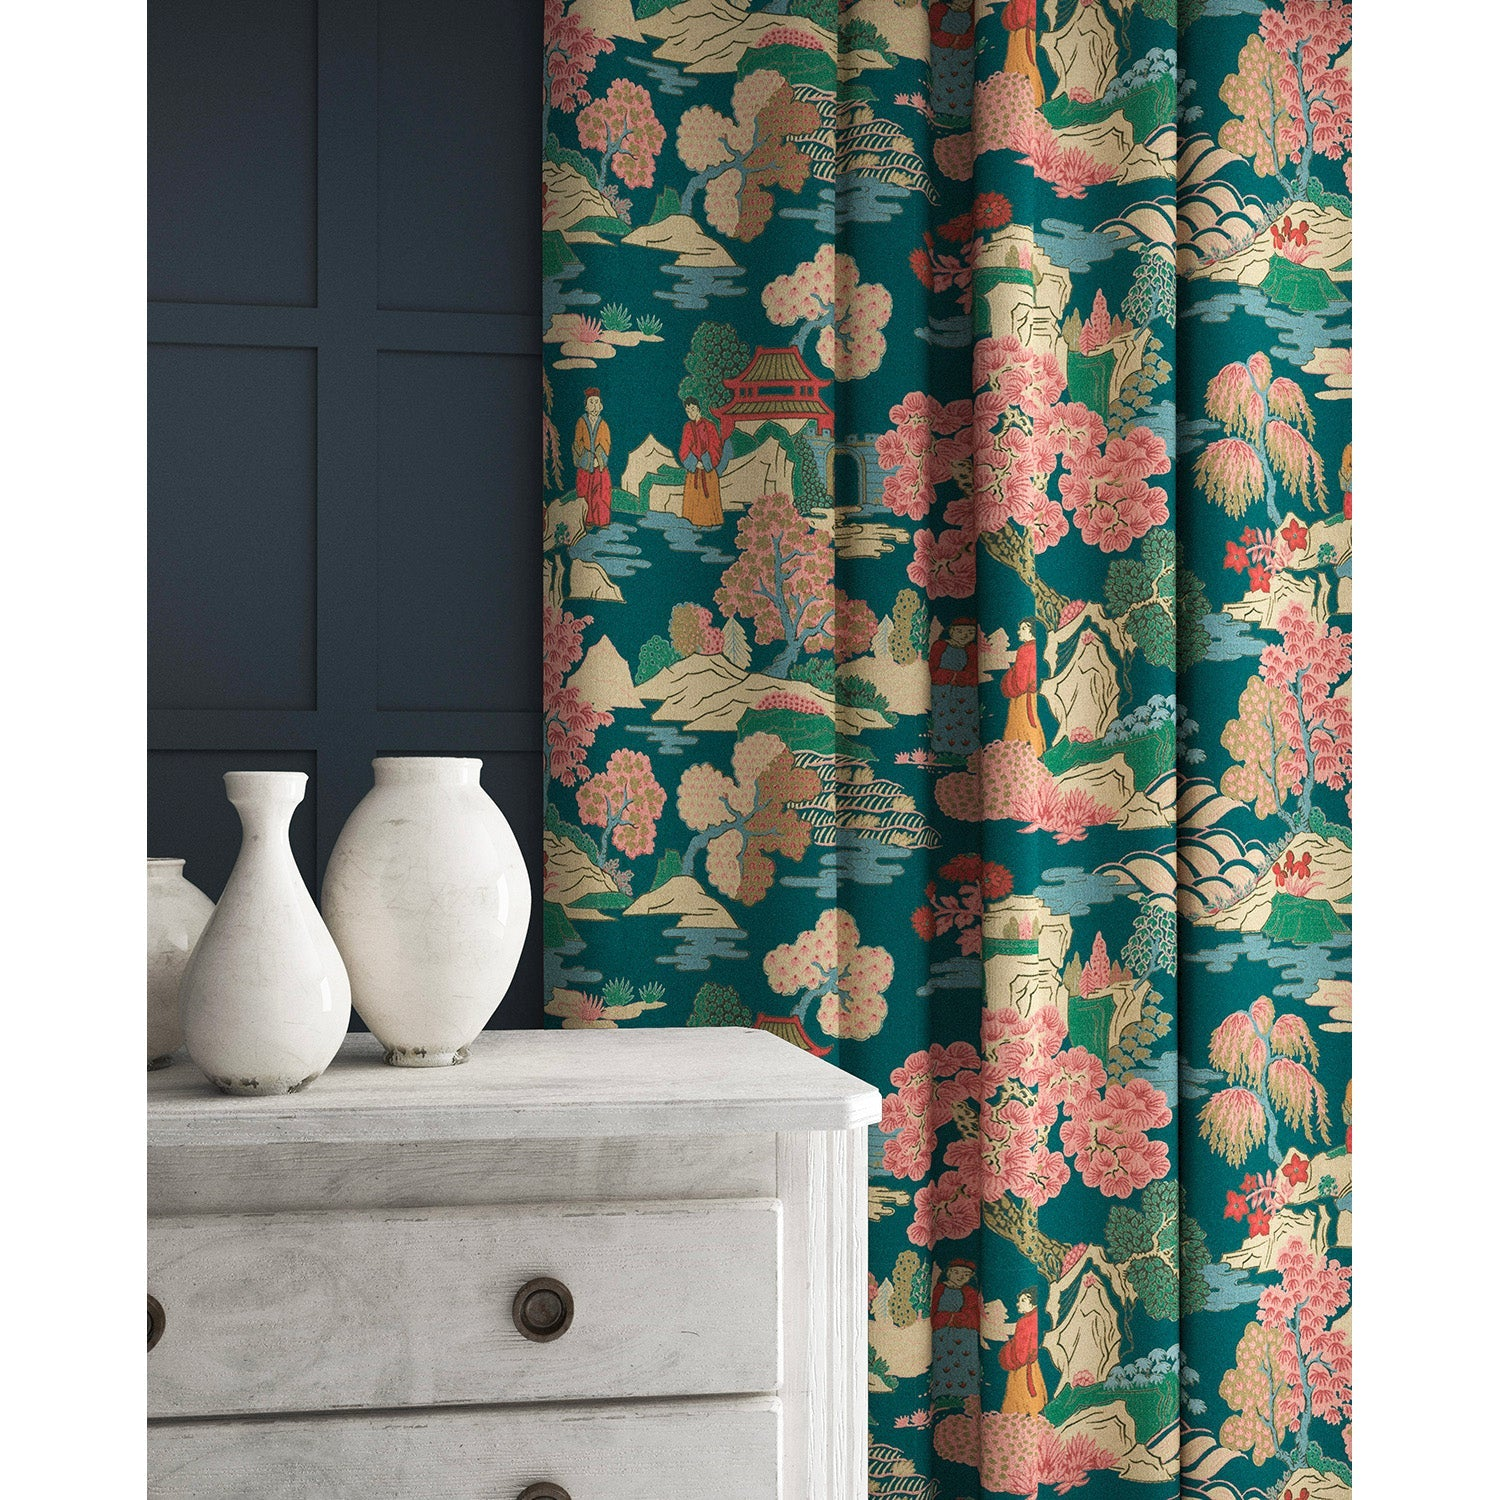 Velvet curtains in a teal and pink velvet fabric with Japanese inspired design and stain resistant finish